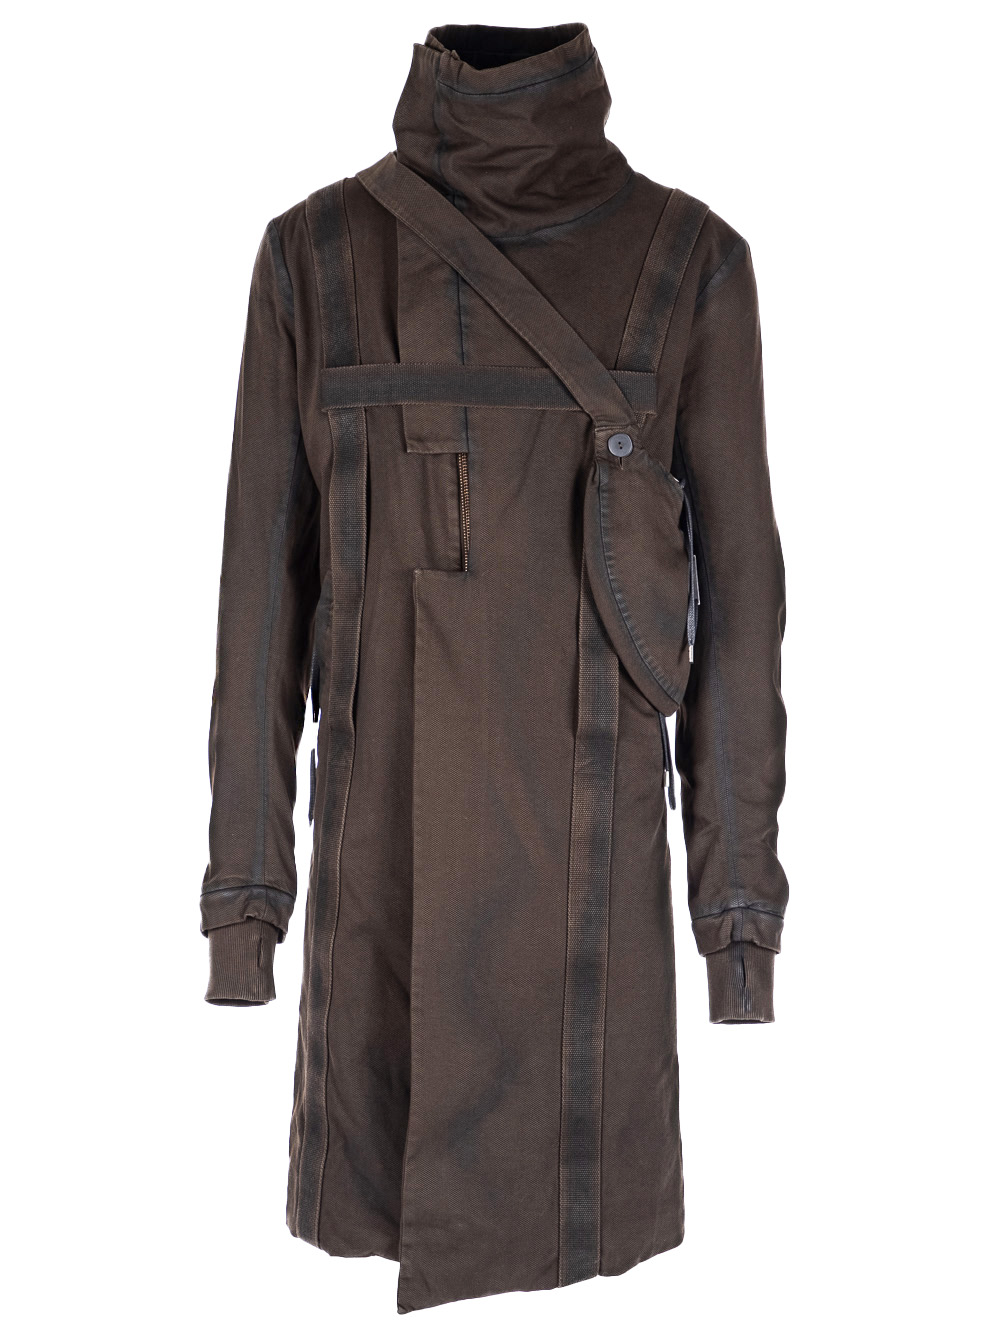 HARNESSED ZIP UP COTTON COAT